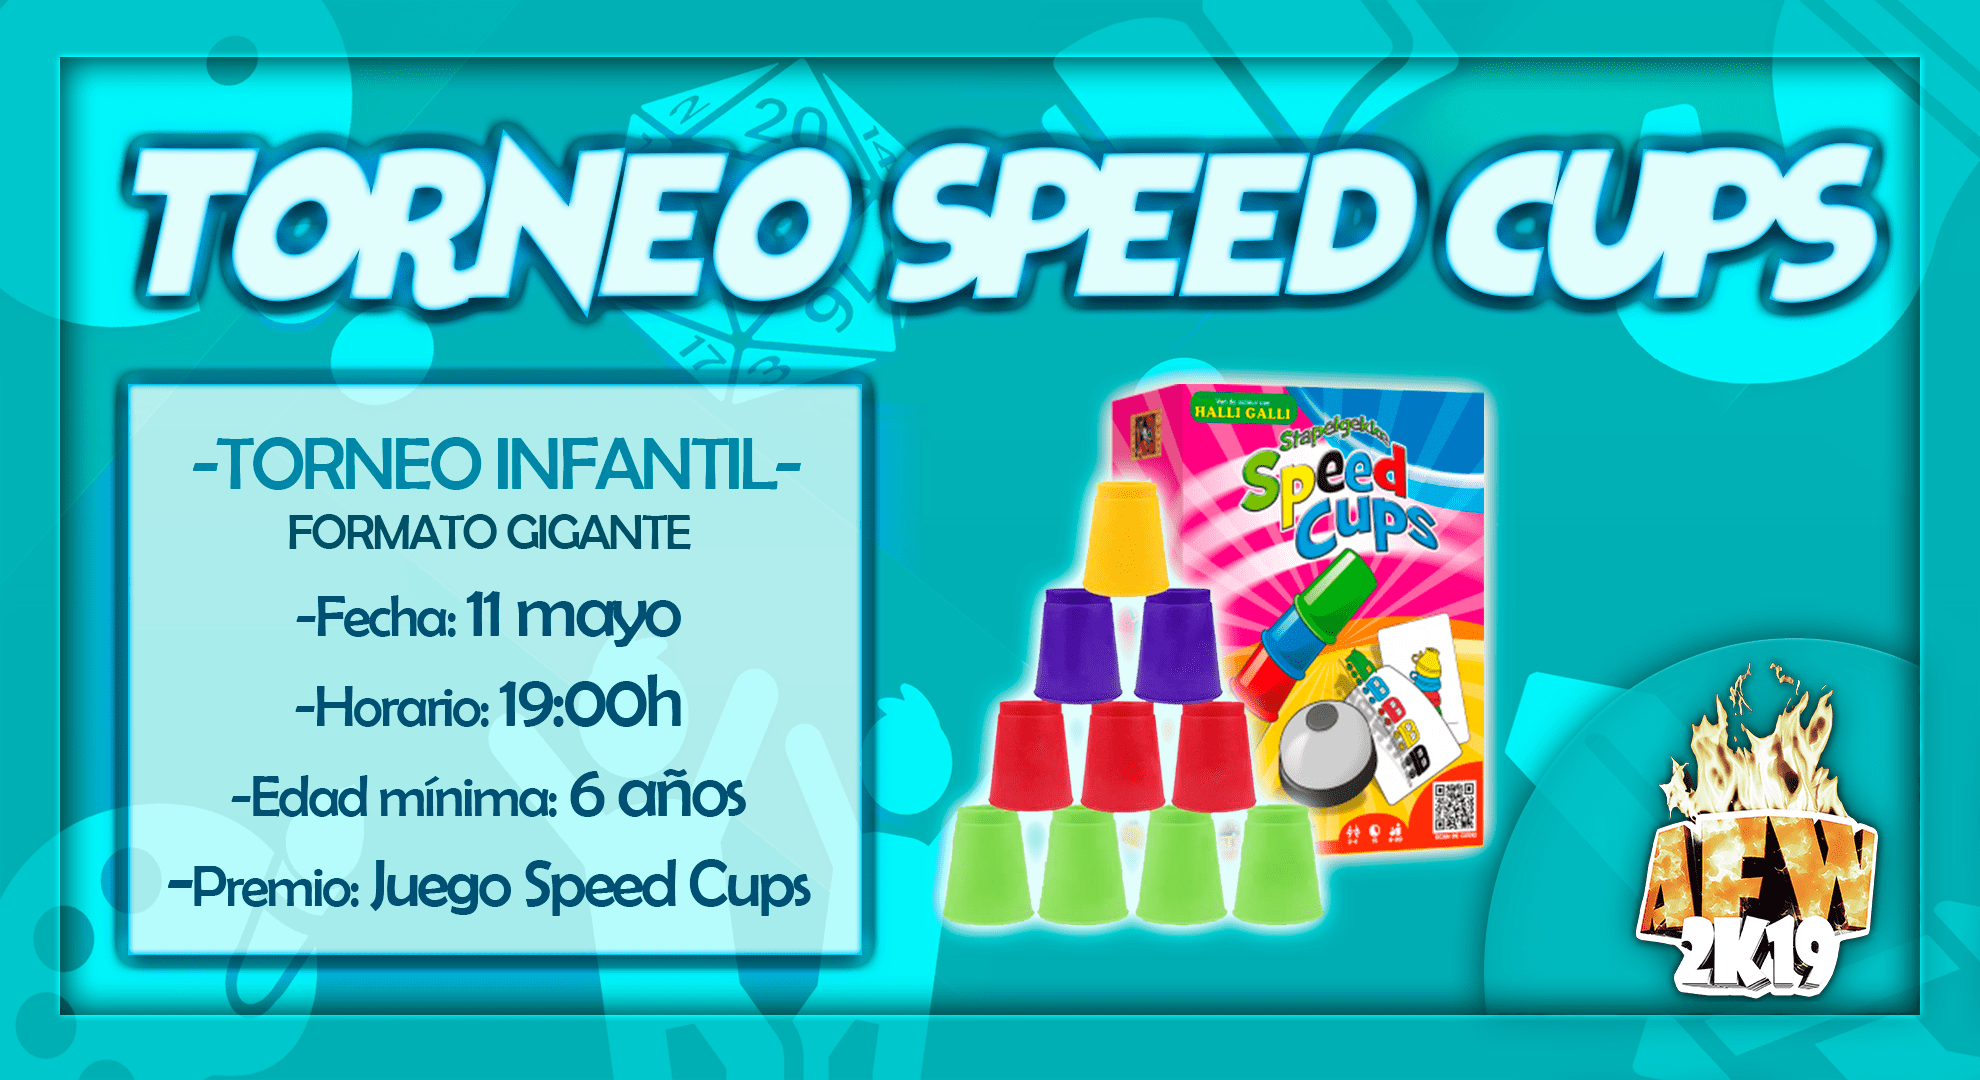 Torneo Speed Cups